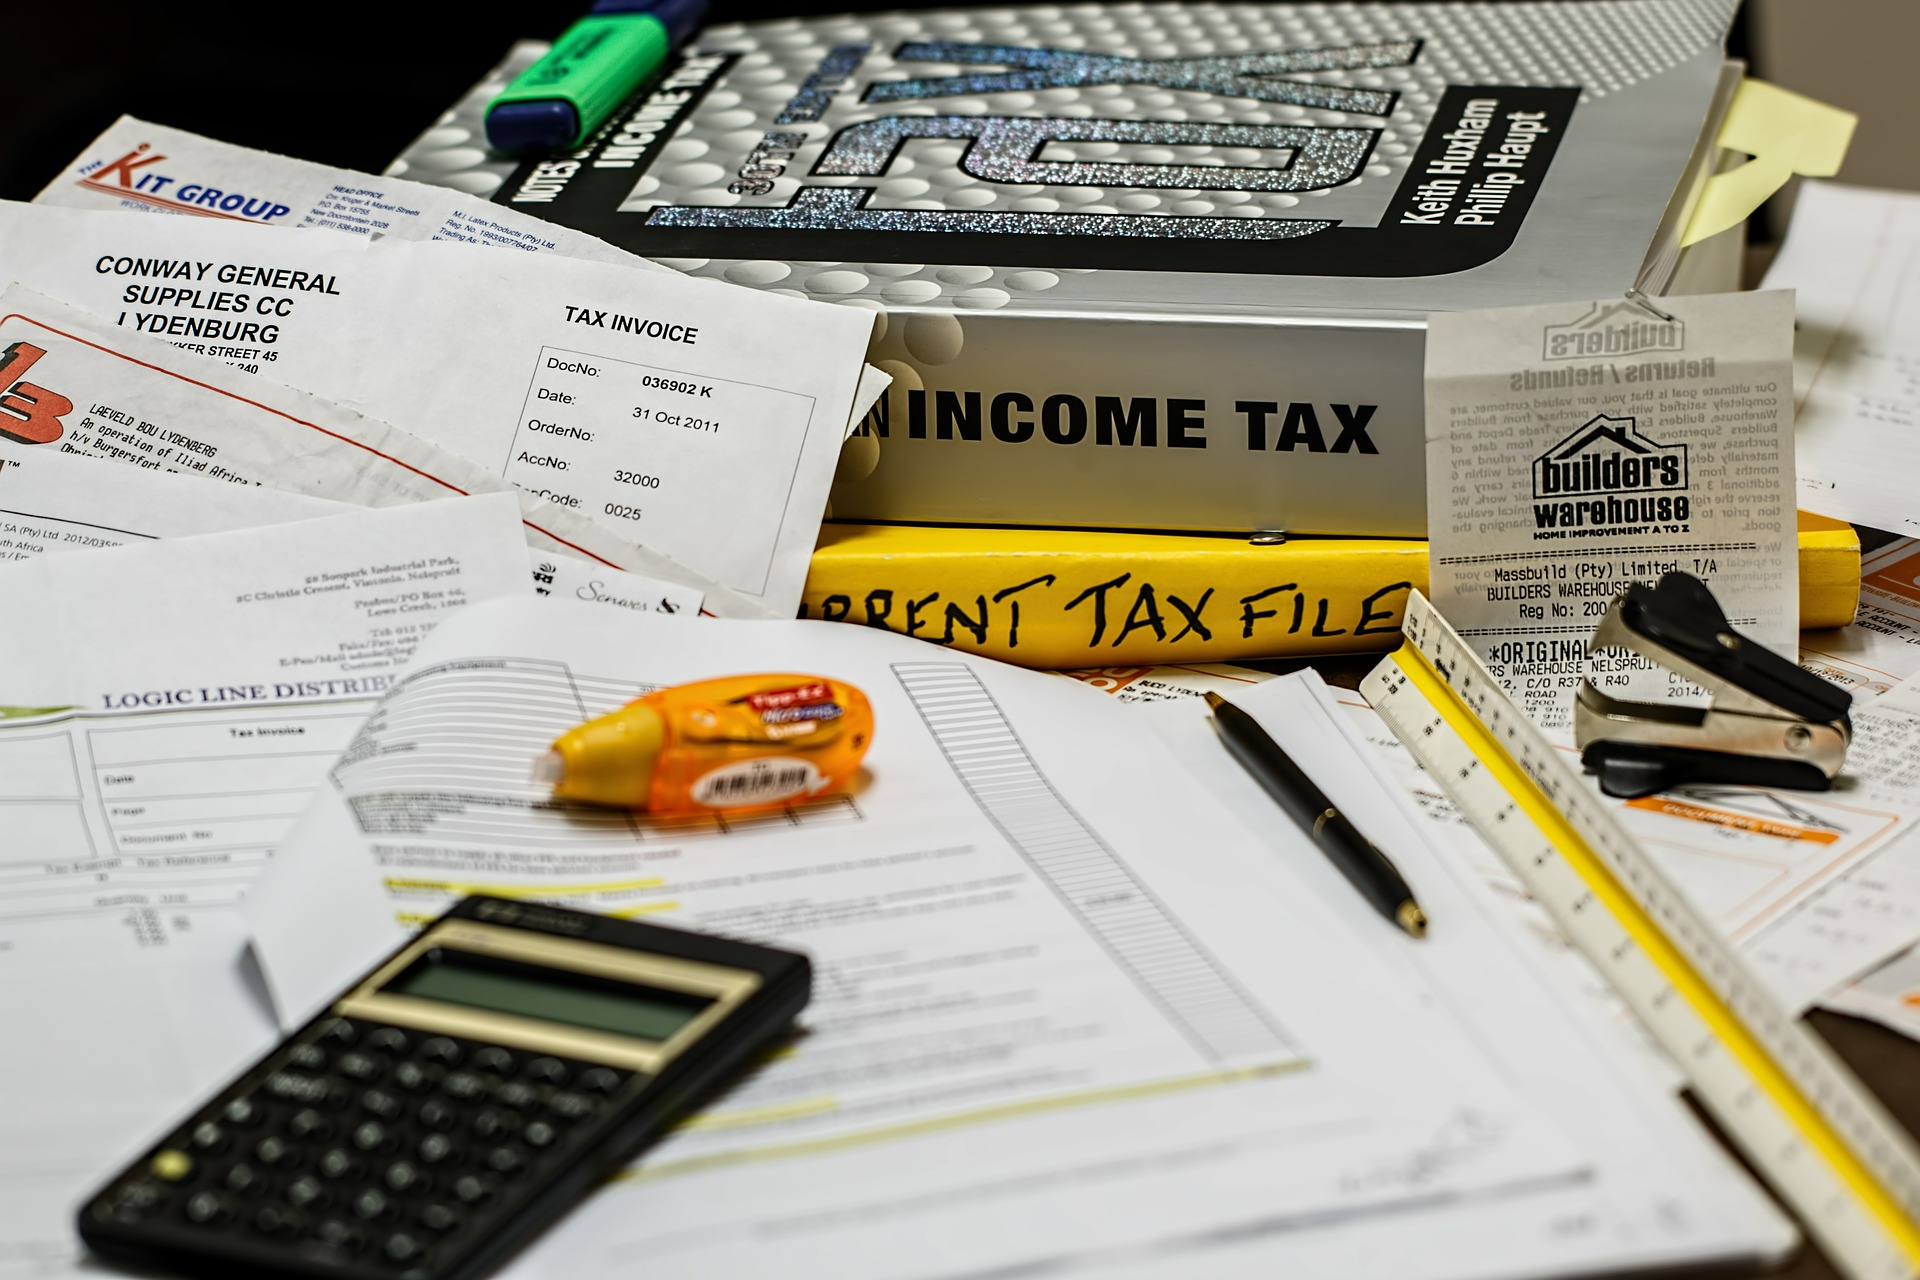 Extension of the deadline for submission of 2019 Income Tax returns